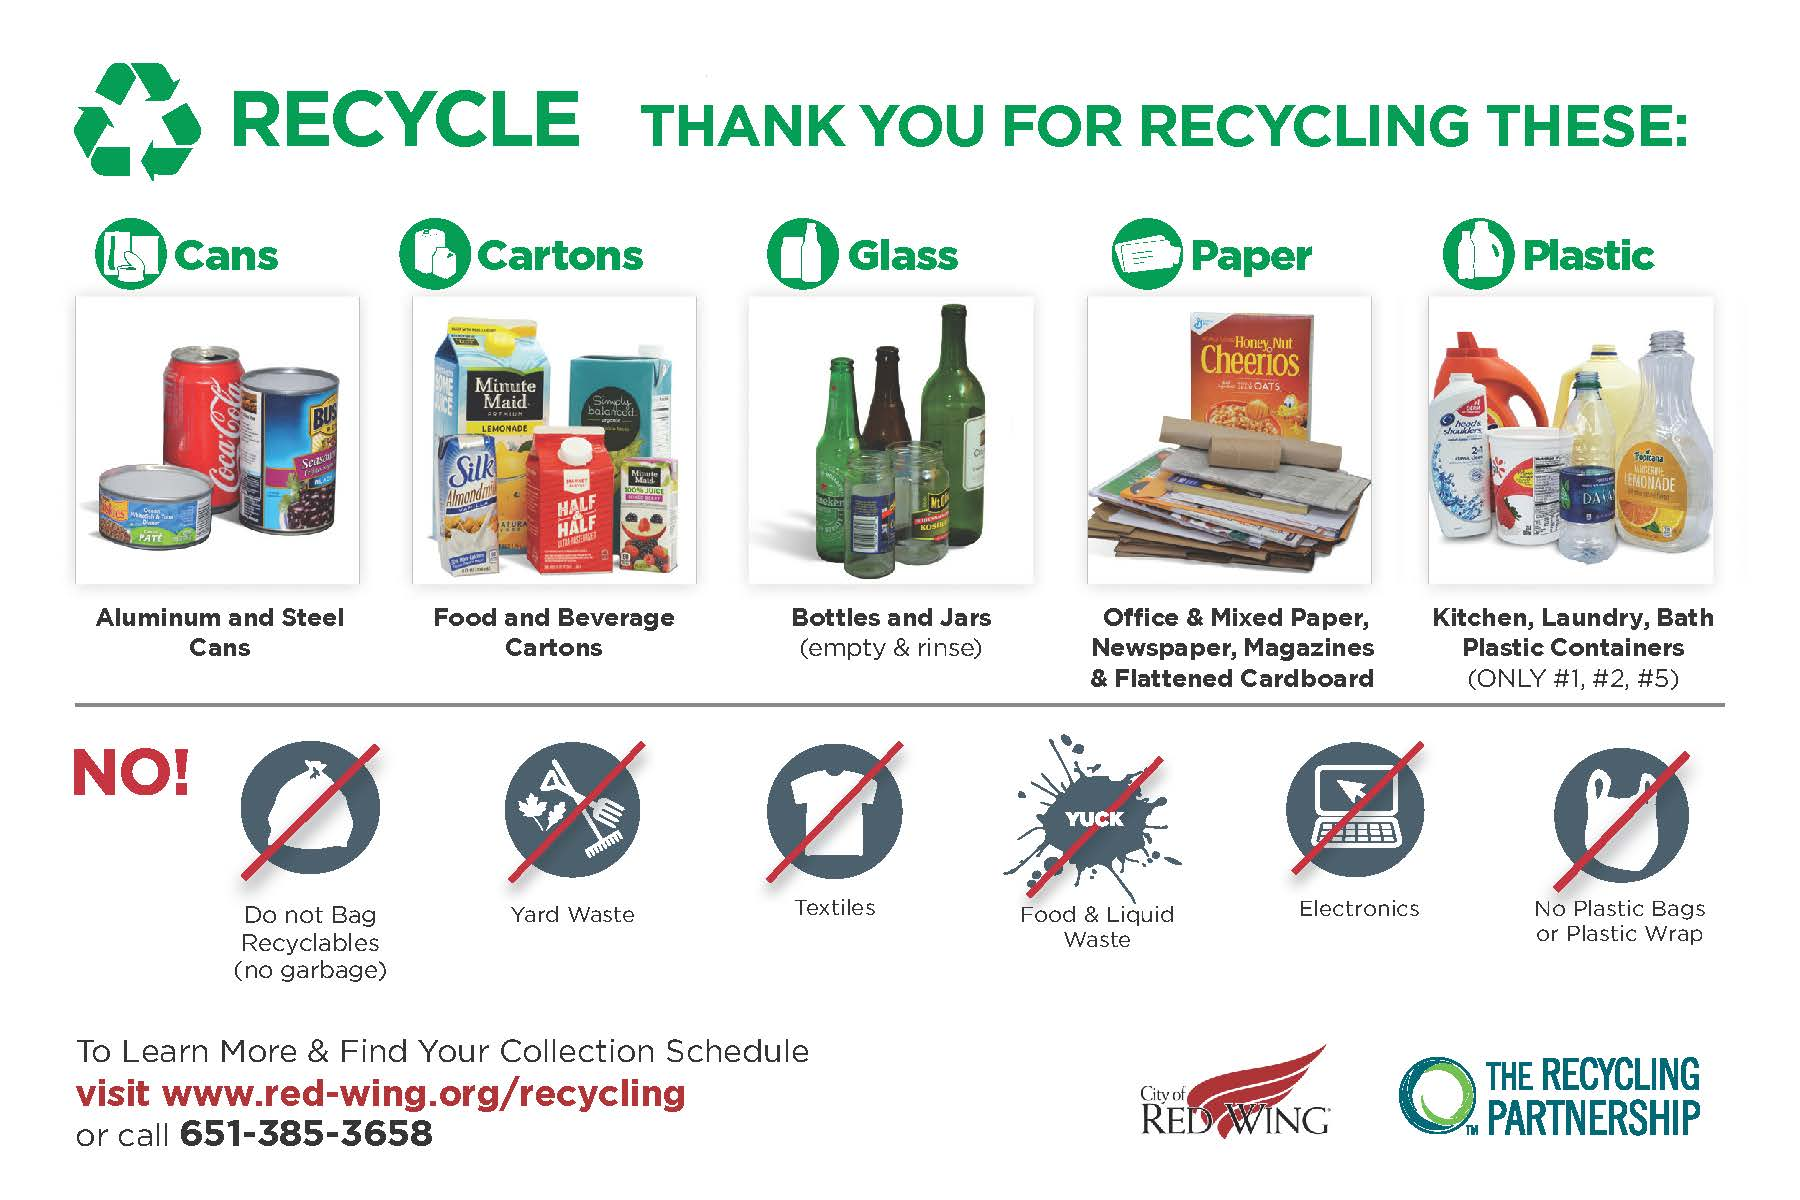 Image of single-sort recyclables and non-recyclable items